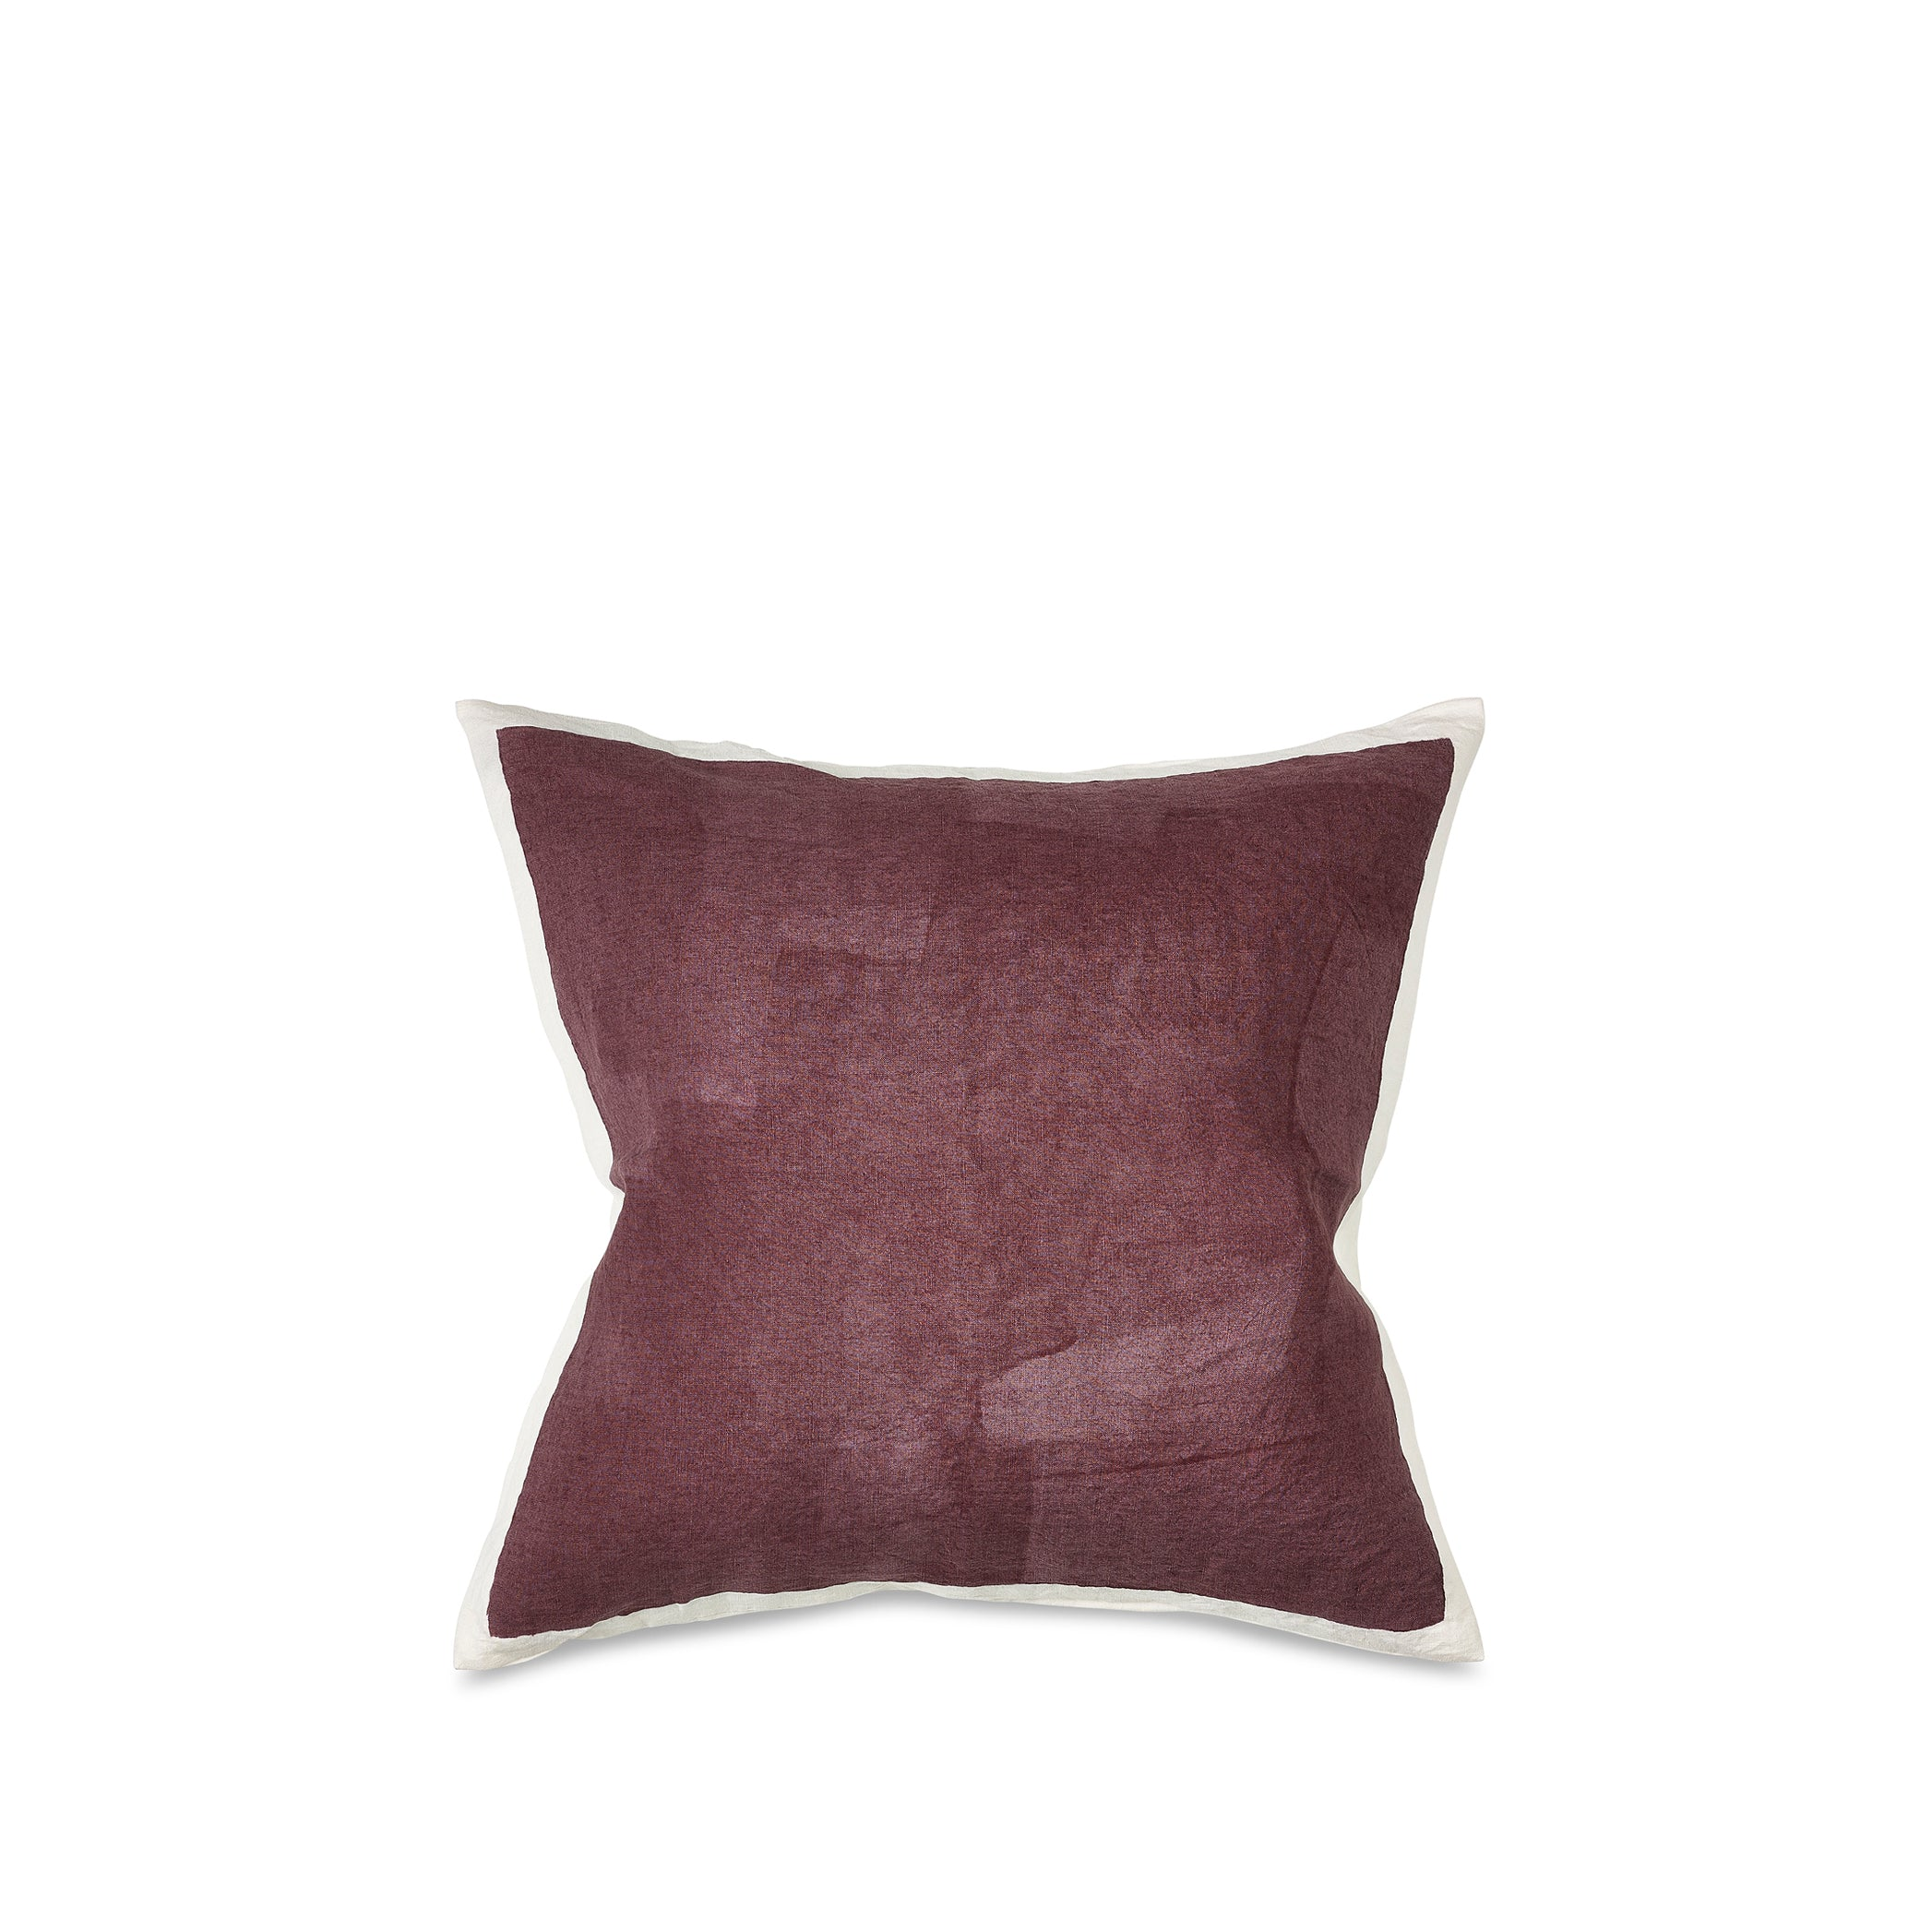 Hand Painted Linen Cushion Cover in Grape, 50cm x 50cm